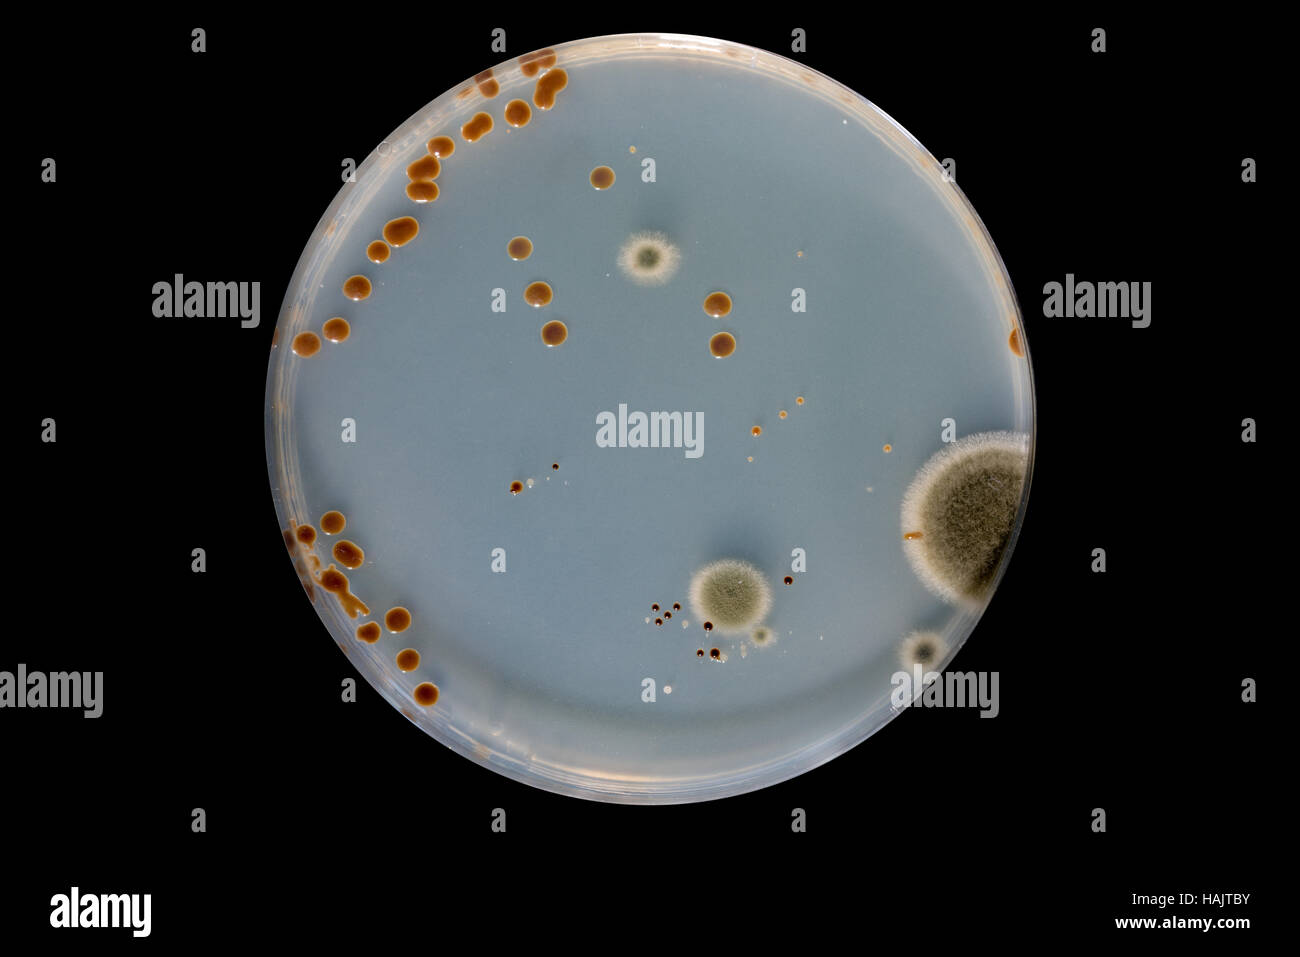 Research various microorganisms / microflora in petri dishes - Stock Image